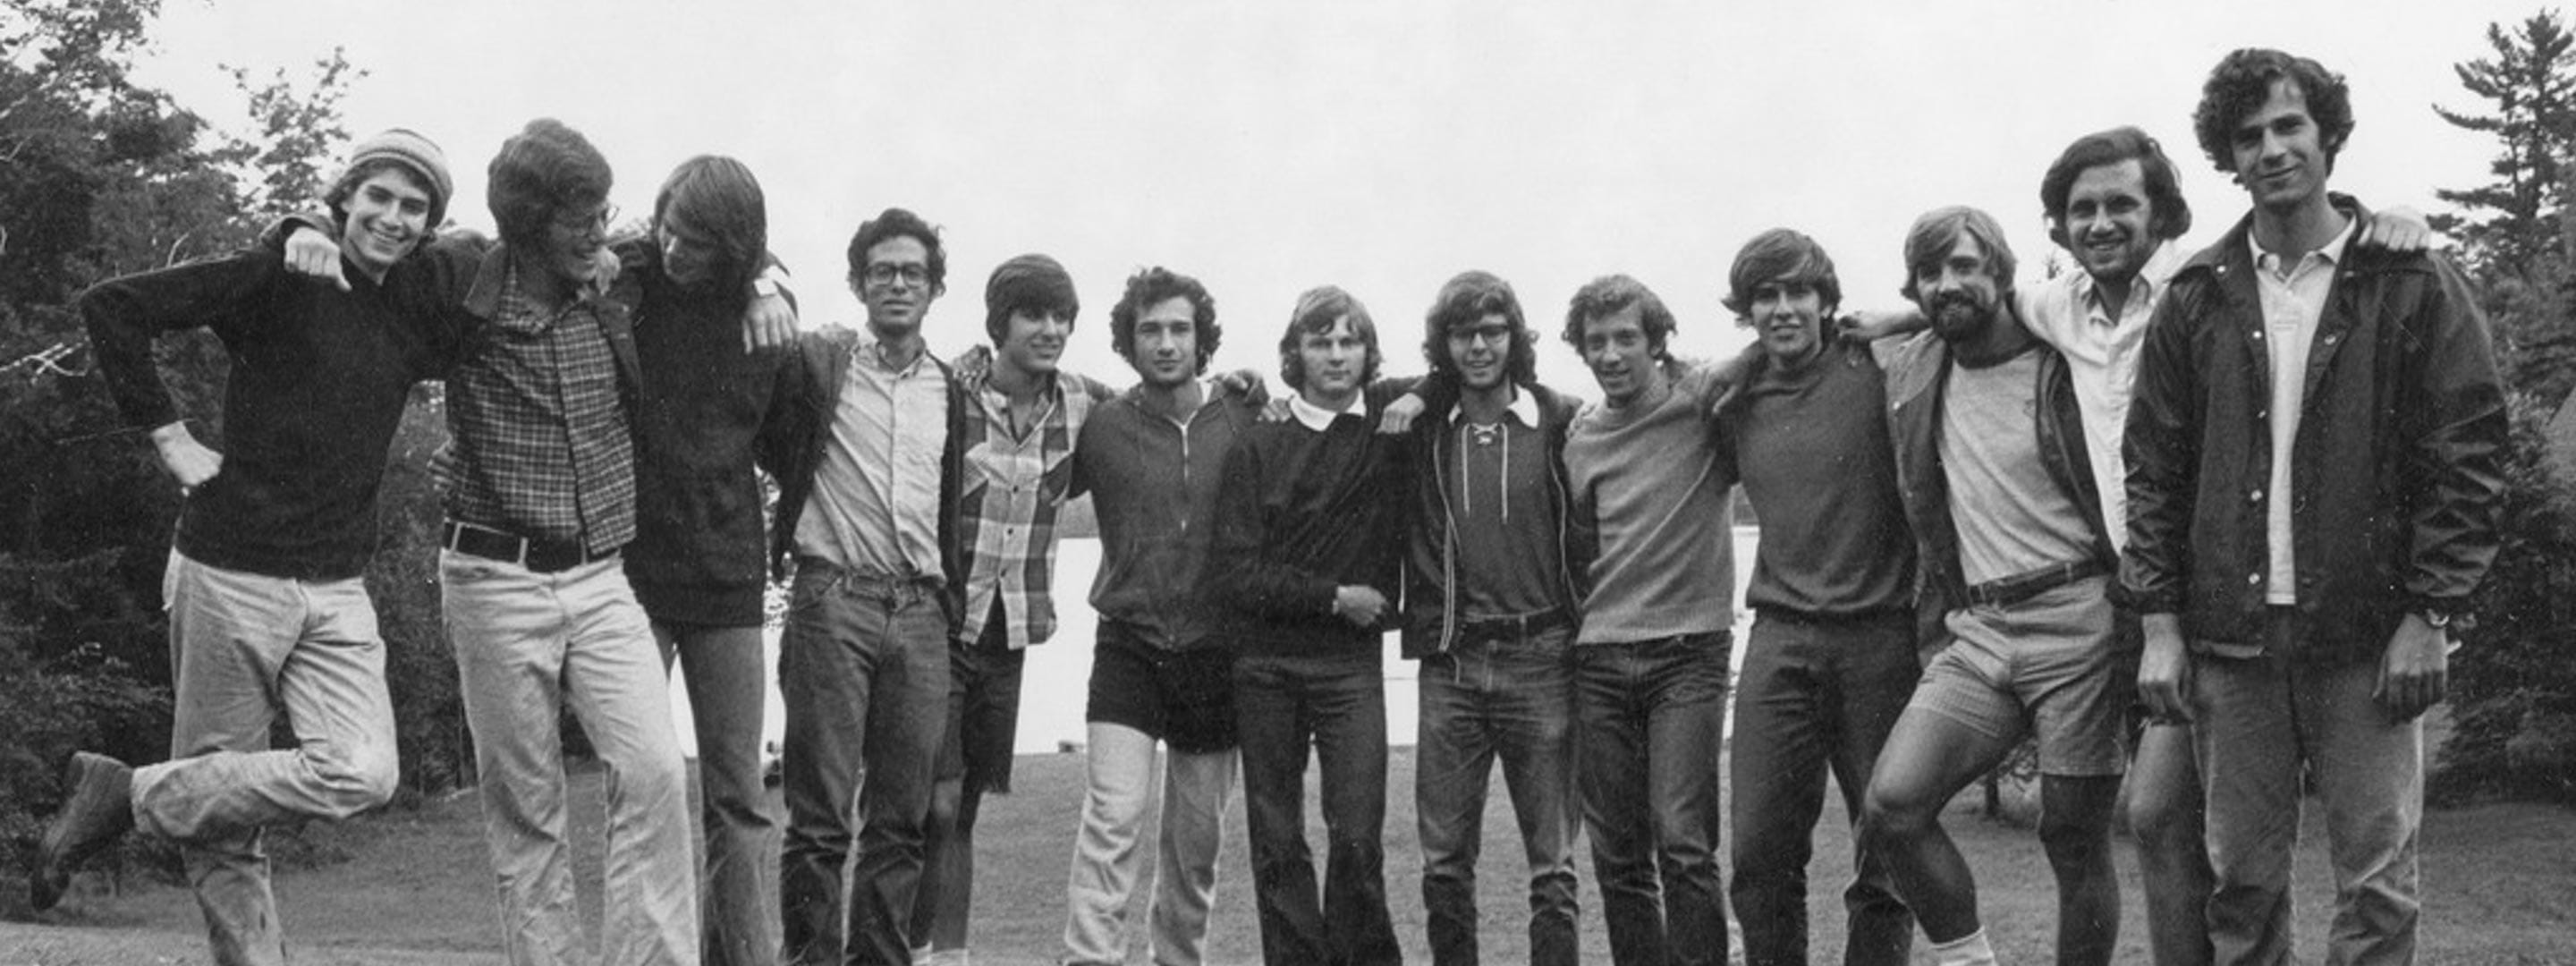 black and white picture of group of young men holding arms